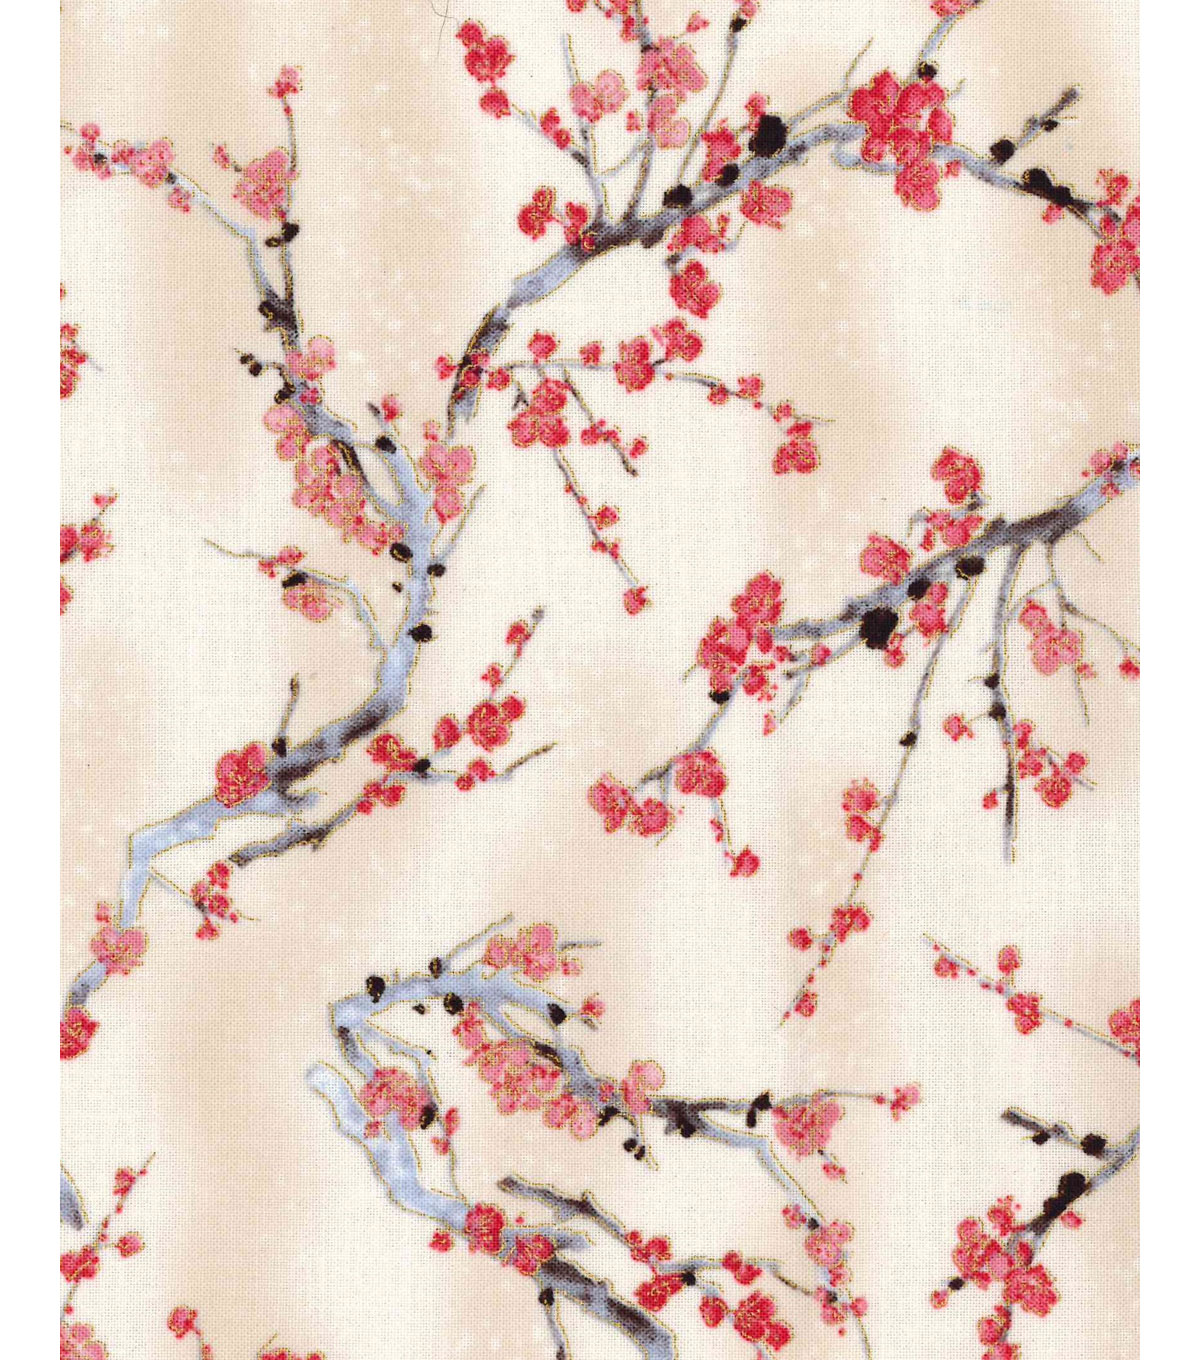 Premium Quilt Cotton Fabric-Cherry Blossom Trees